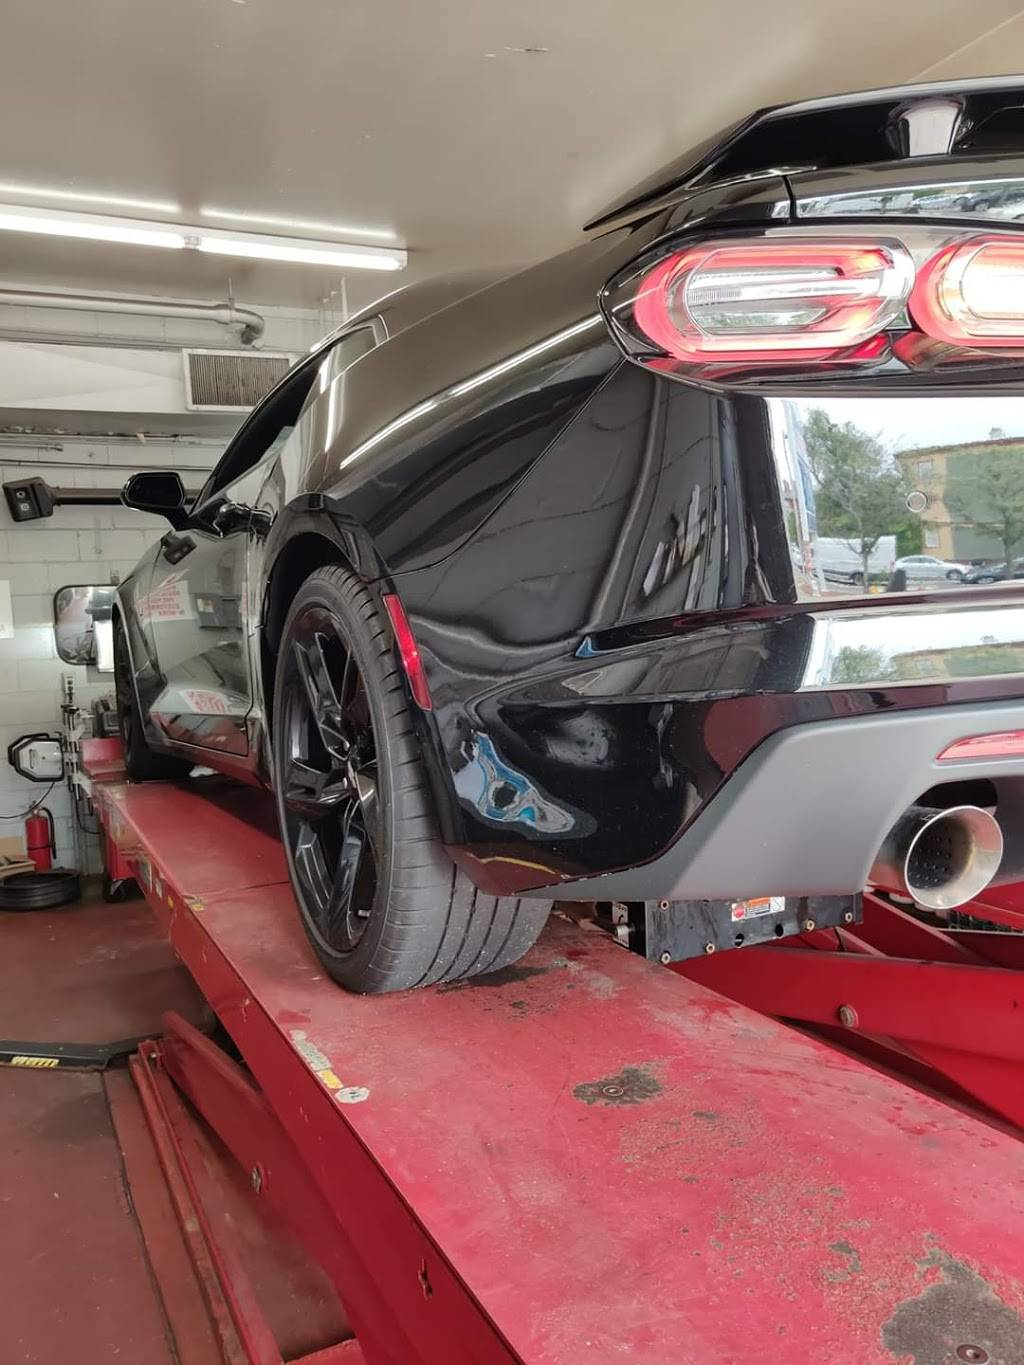 Great Auto service - car repair  | Photo 2 of 5 | Address: 888 Dorchester Ave, Dorchester, MA 02125, USA | Phone: (617) 436-9301